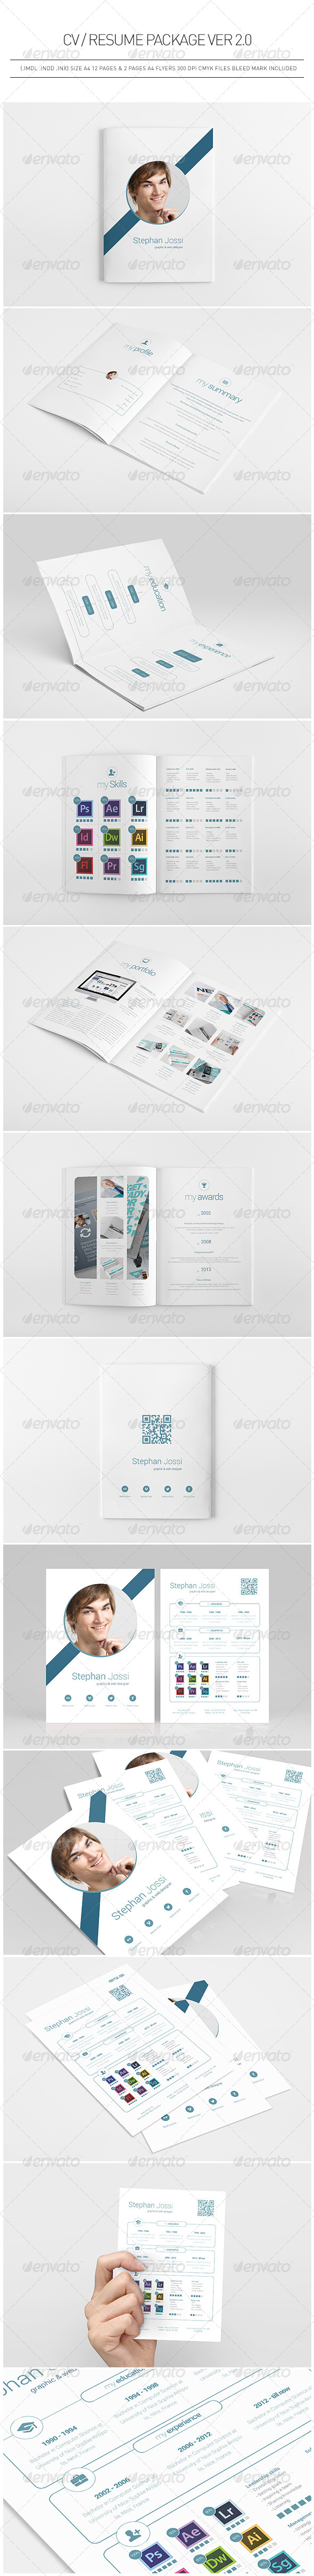 CV / Resume Package Ver 2.0 - Resumes Stationery